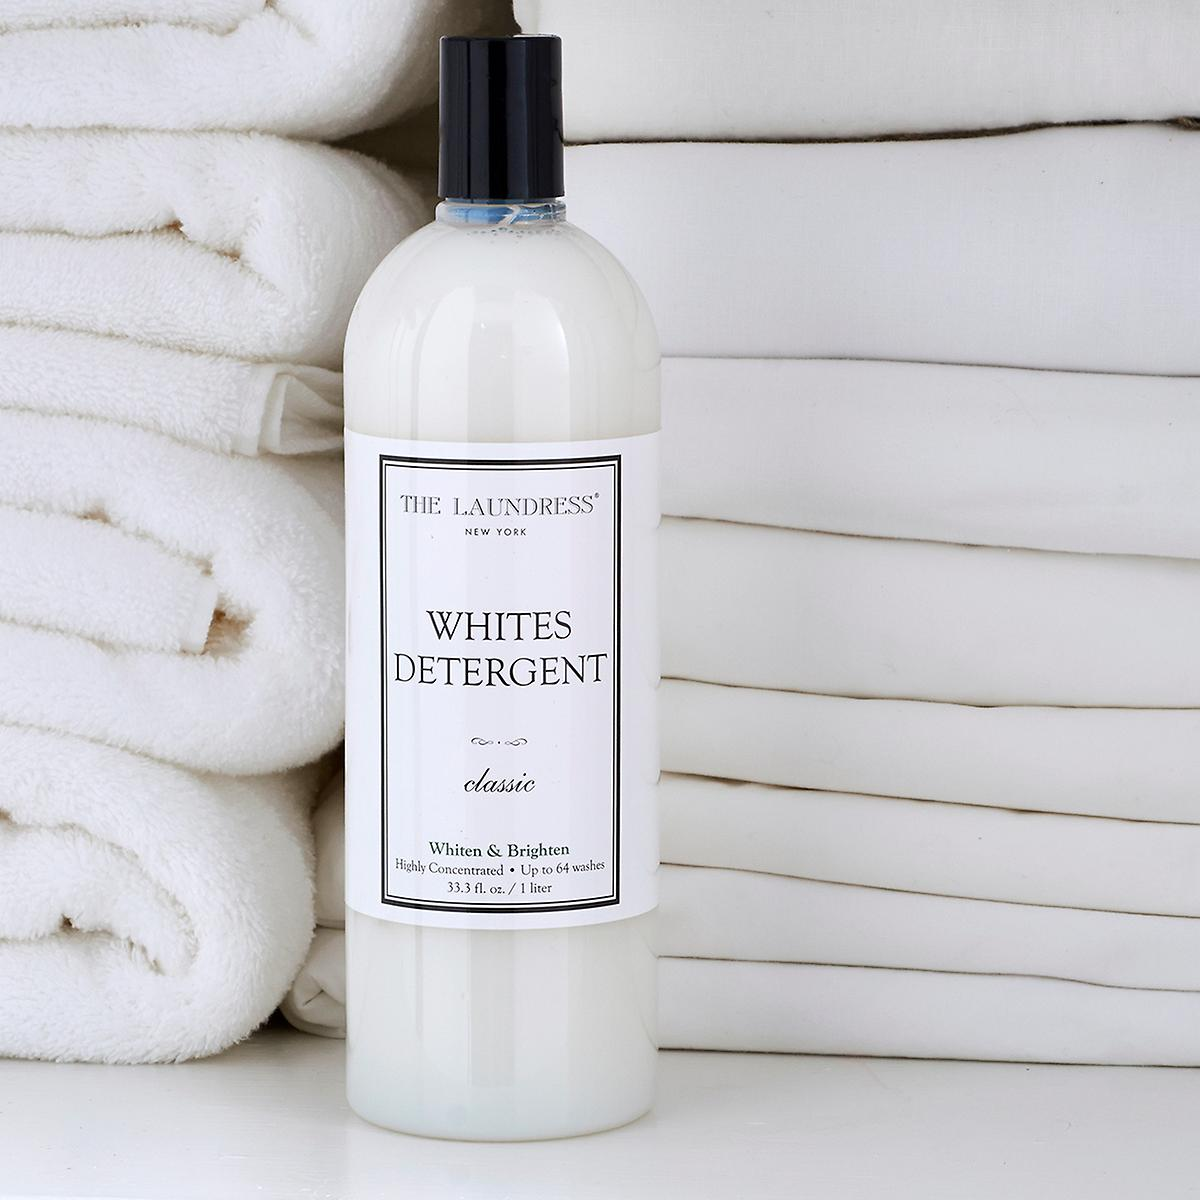 The Laundress 16 oz. Whites Detergent